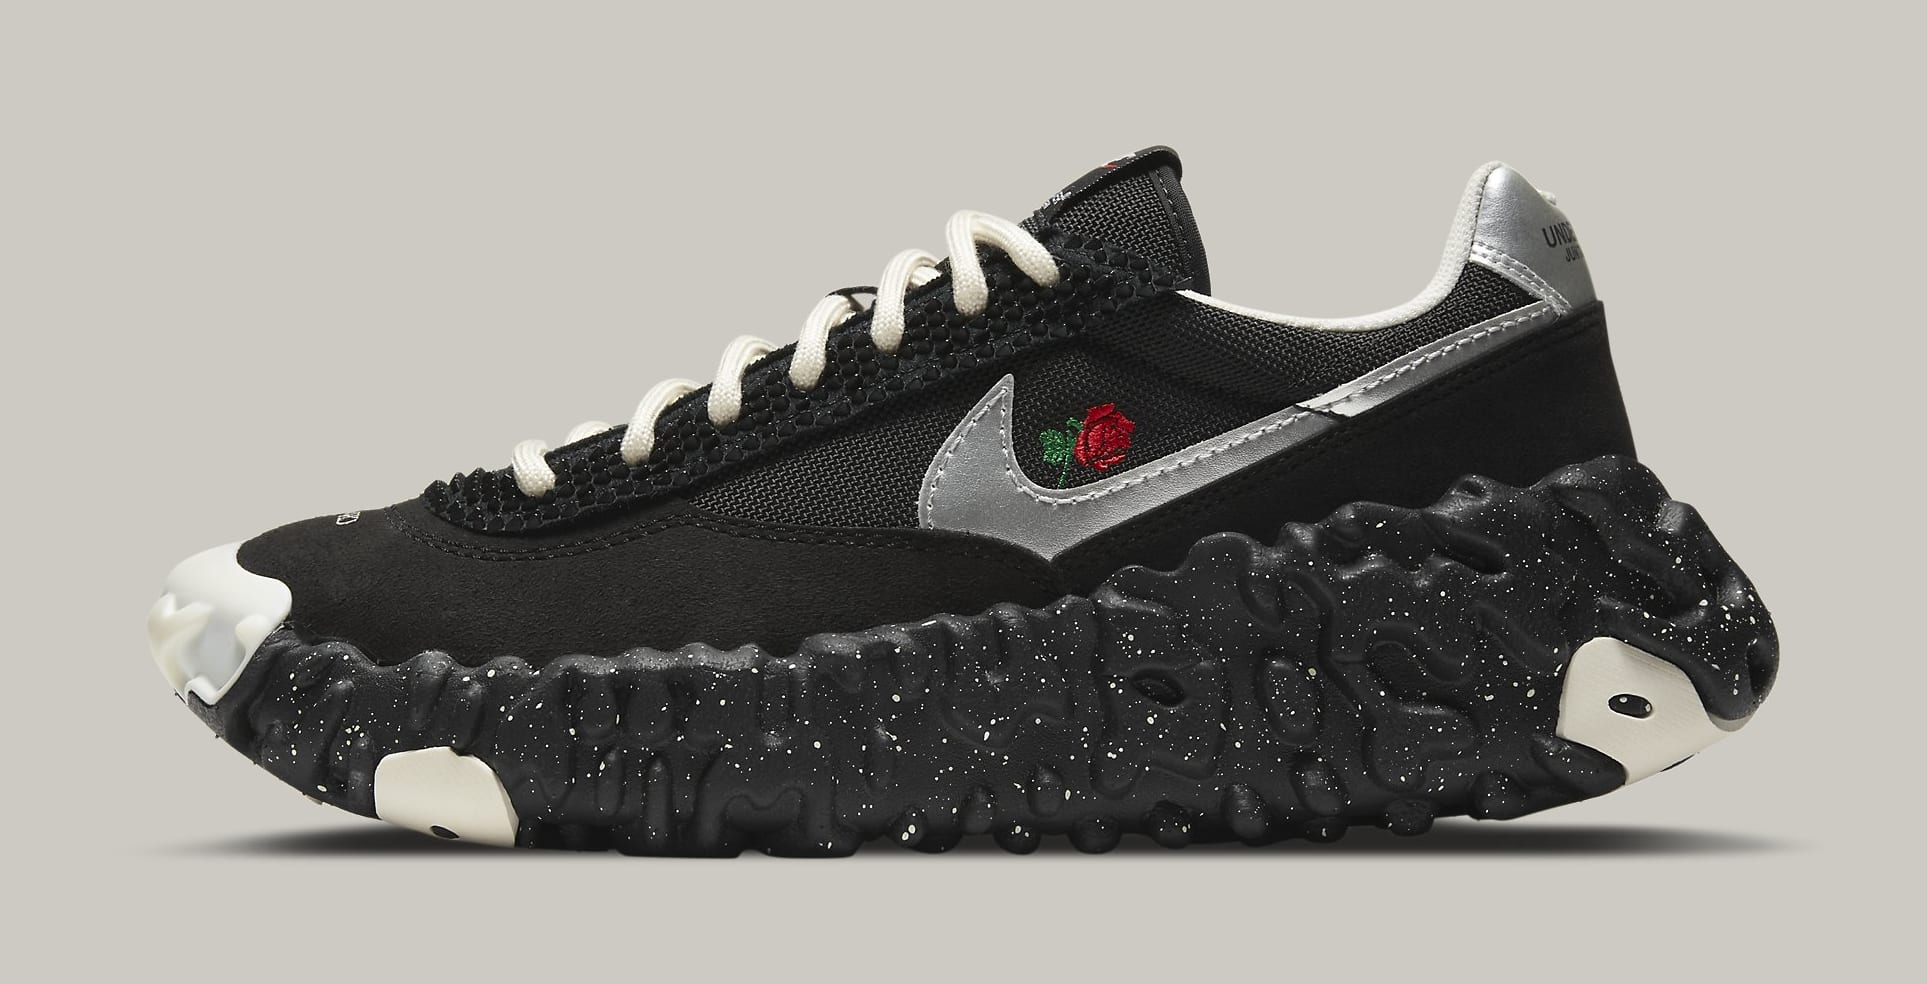 Undercover x Nike Overbreak SP 'Black' DD1789-001 Lateral